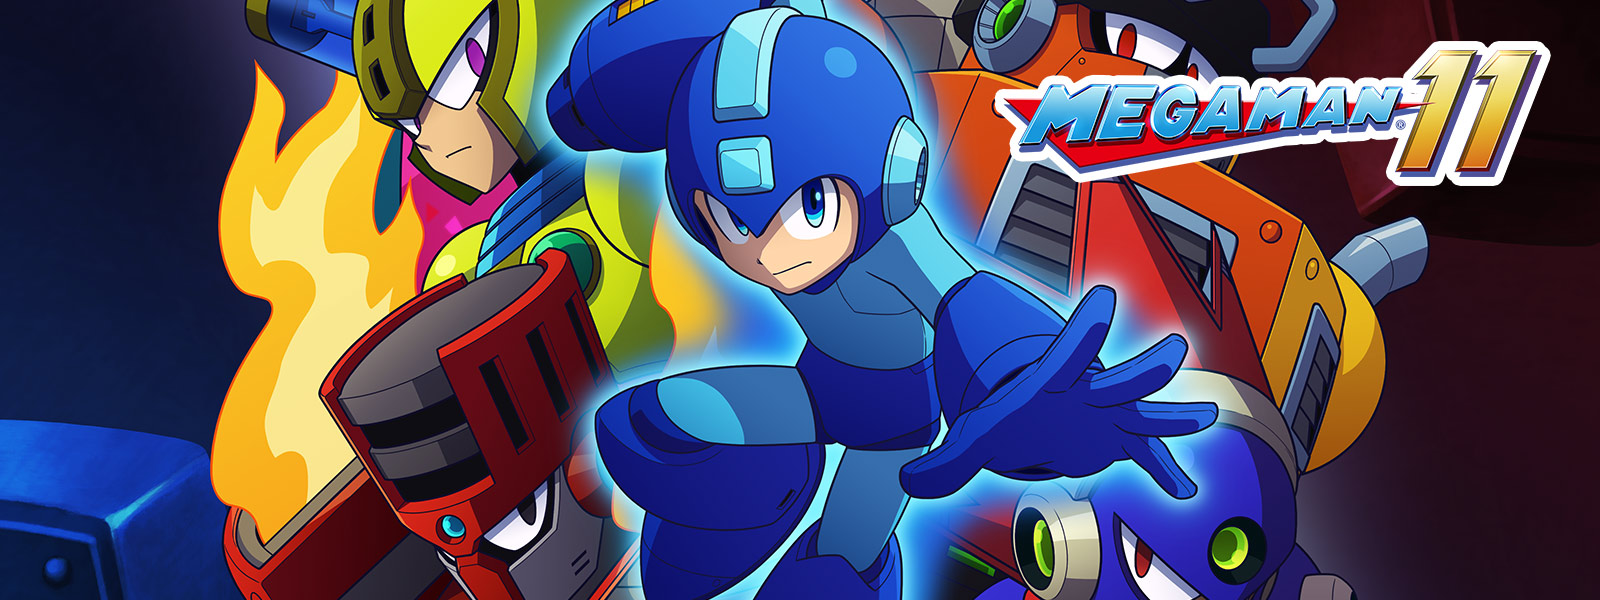 Mega Man 11, Mega Man readies his buster in front of a collage of robot masters